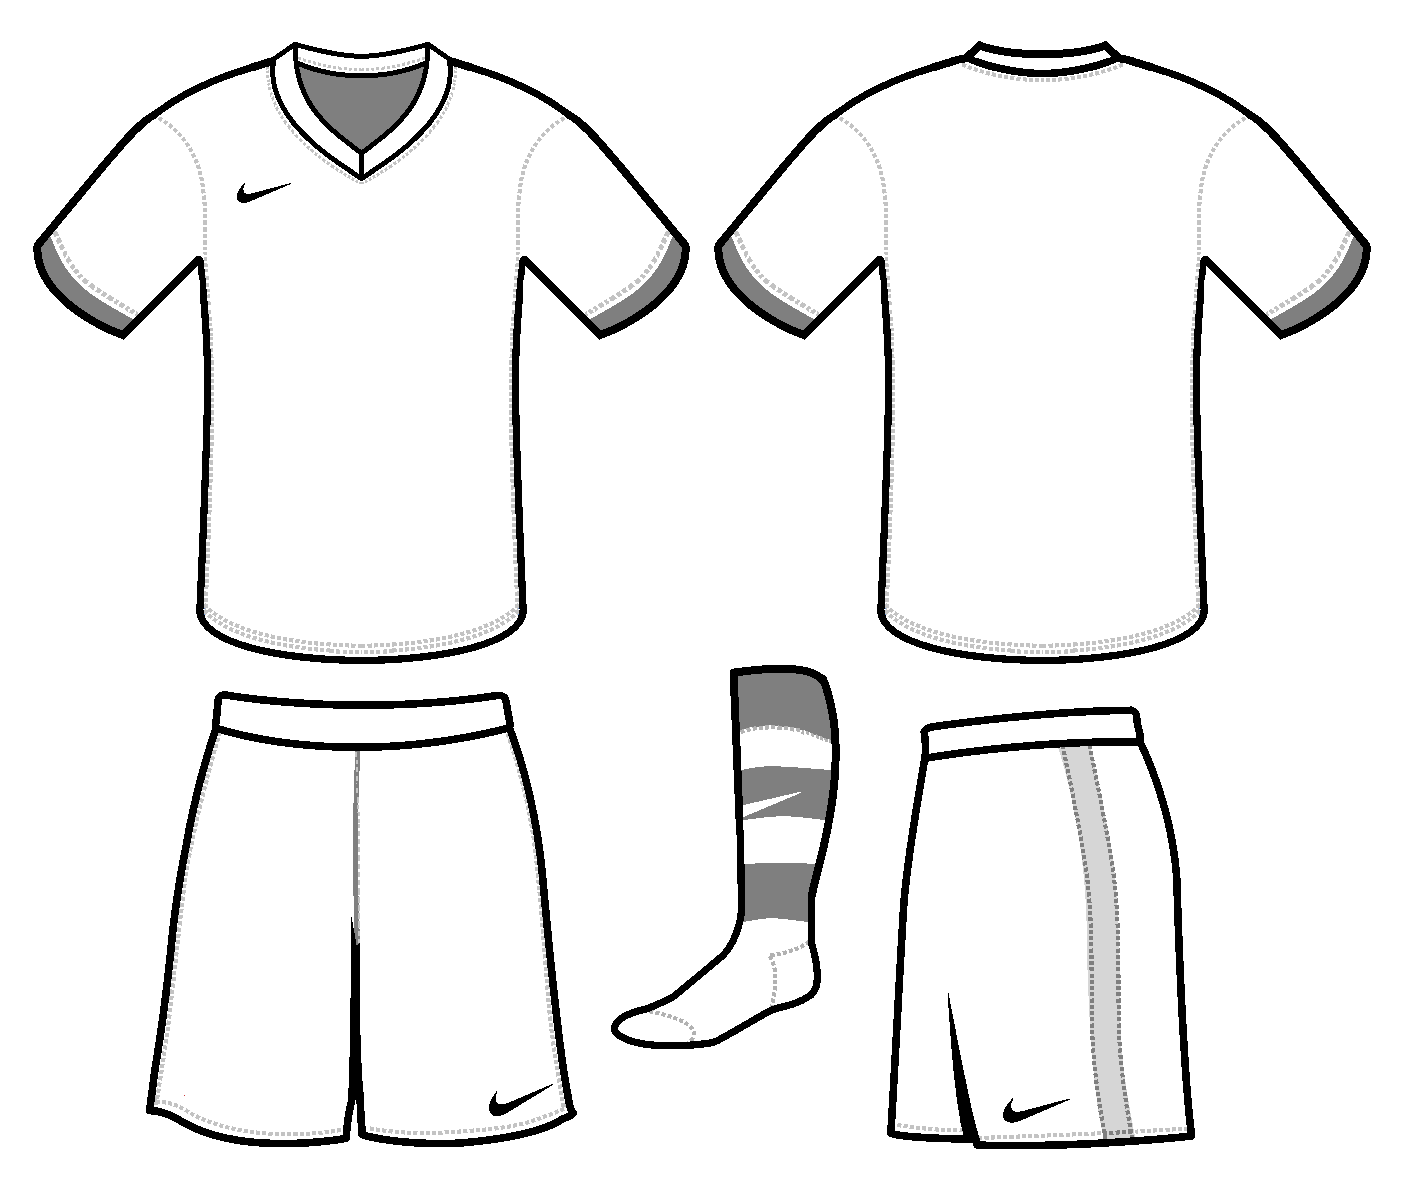 Free Blank Soccer Jersey Template Download Free Clip Art Free Clip Art On Clipart Library